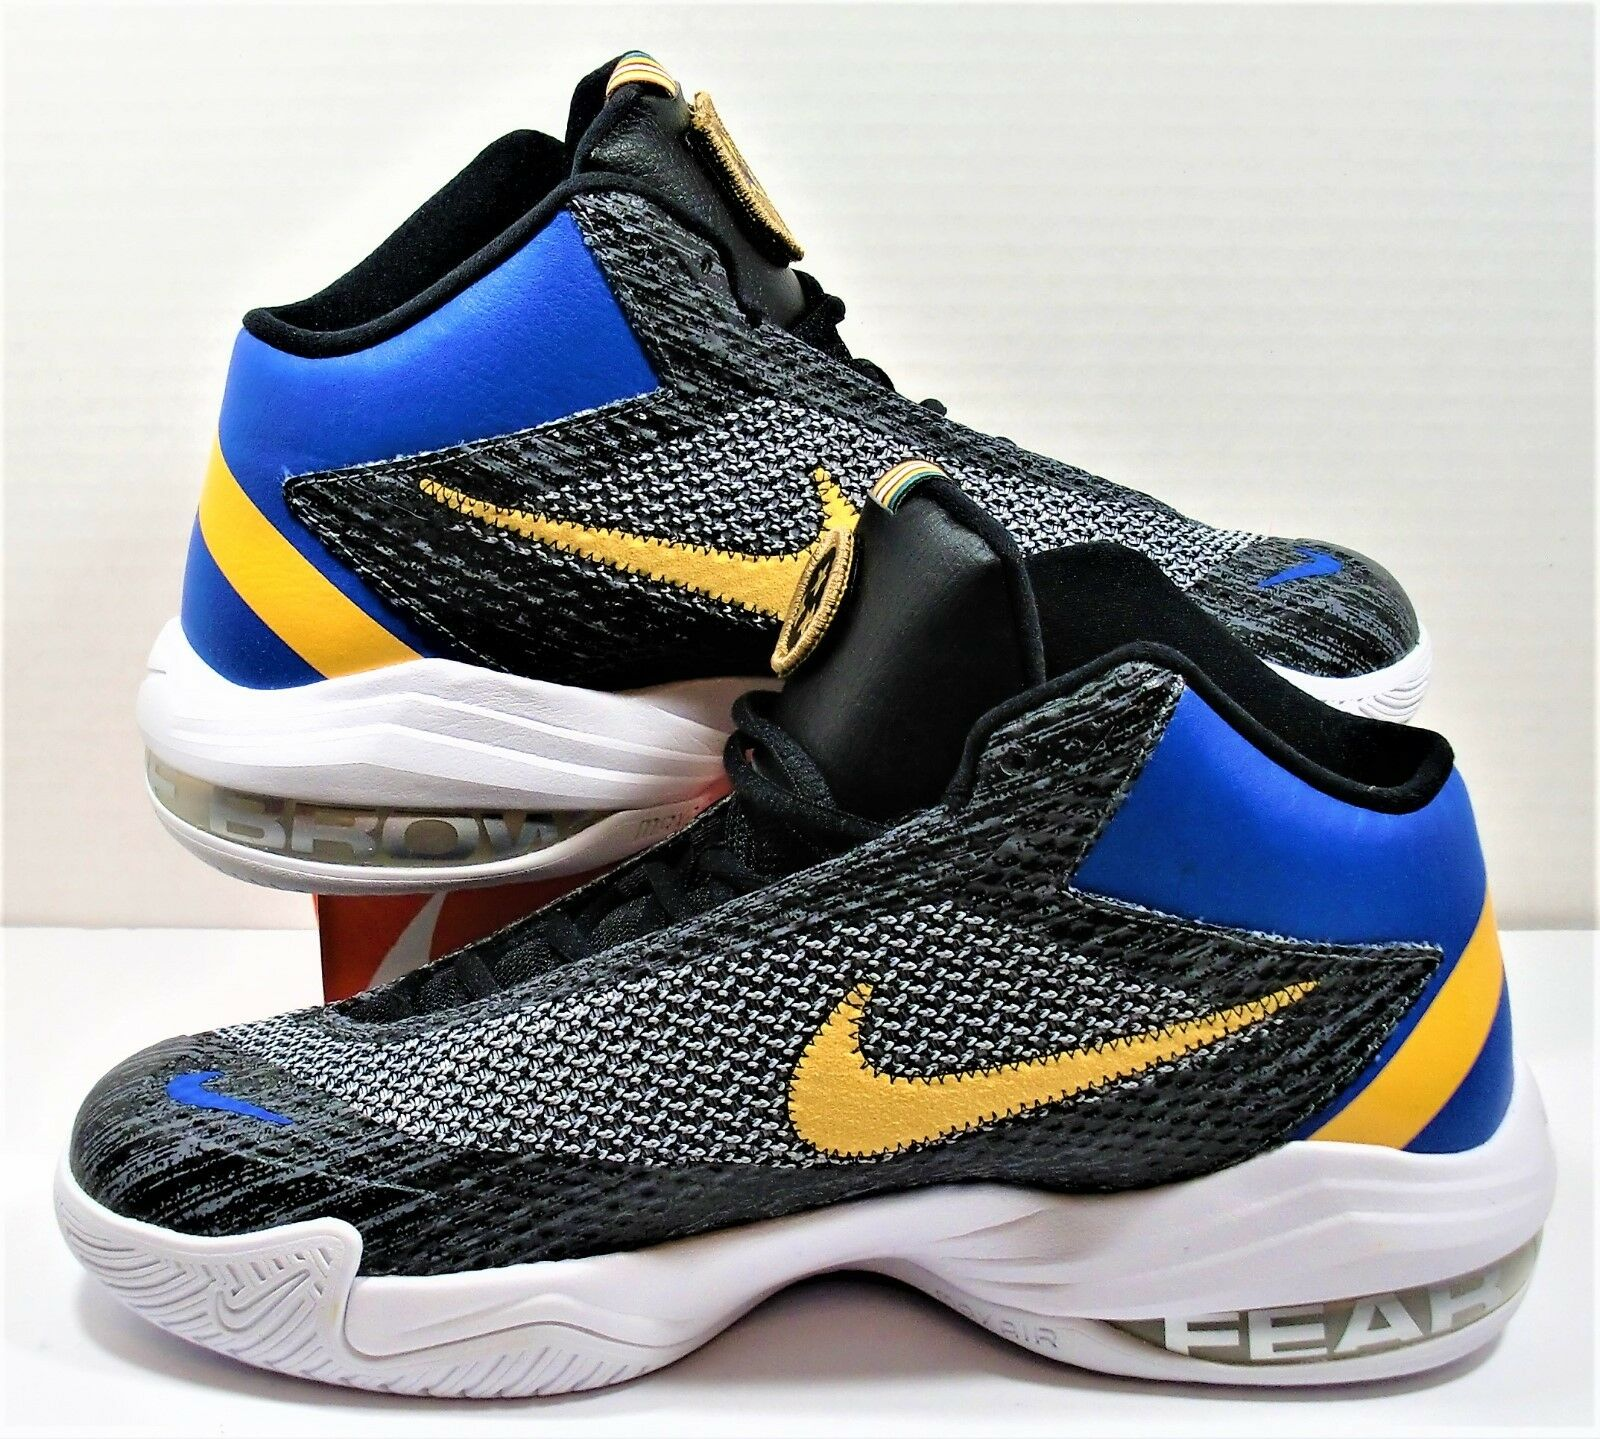 best website 8223a 6f52a ... Nike Air Max Max Max Audacity ASG LMTD Anthony Davis Mens Shoes Sz 10.5  NEW 840677 ...